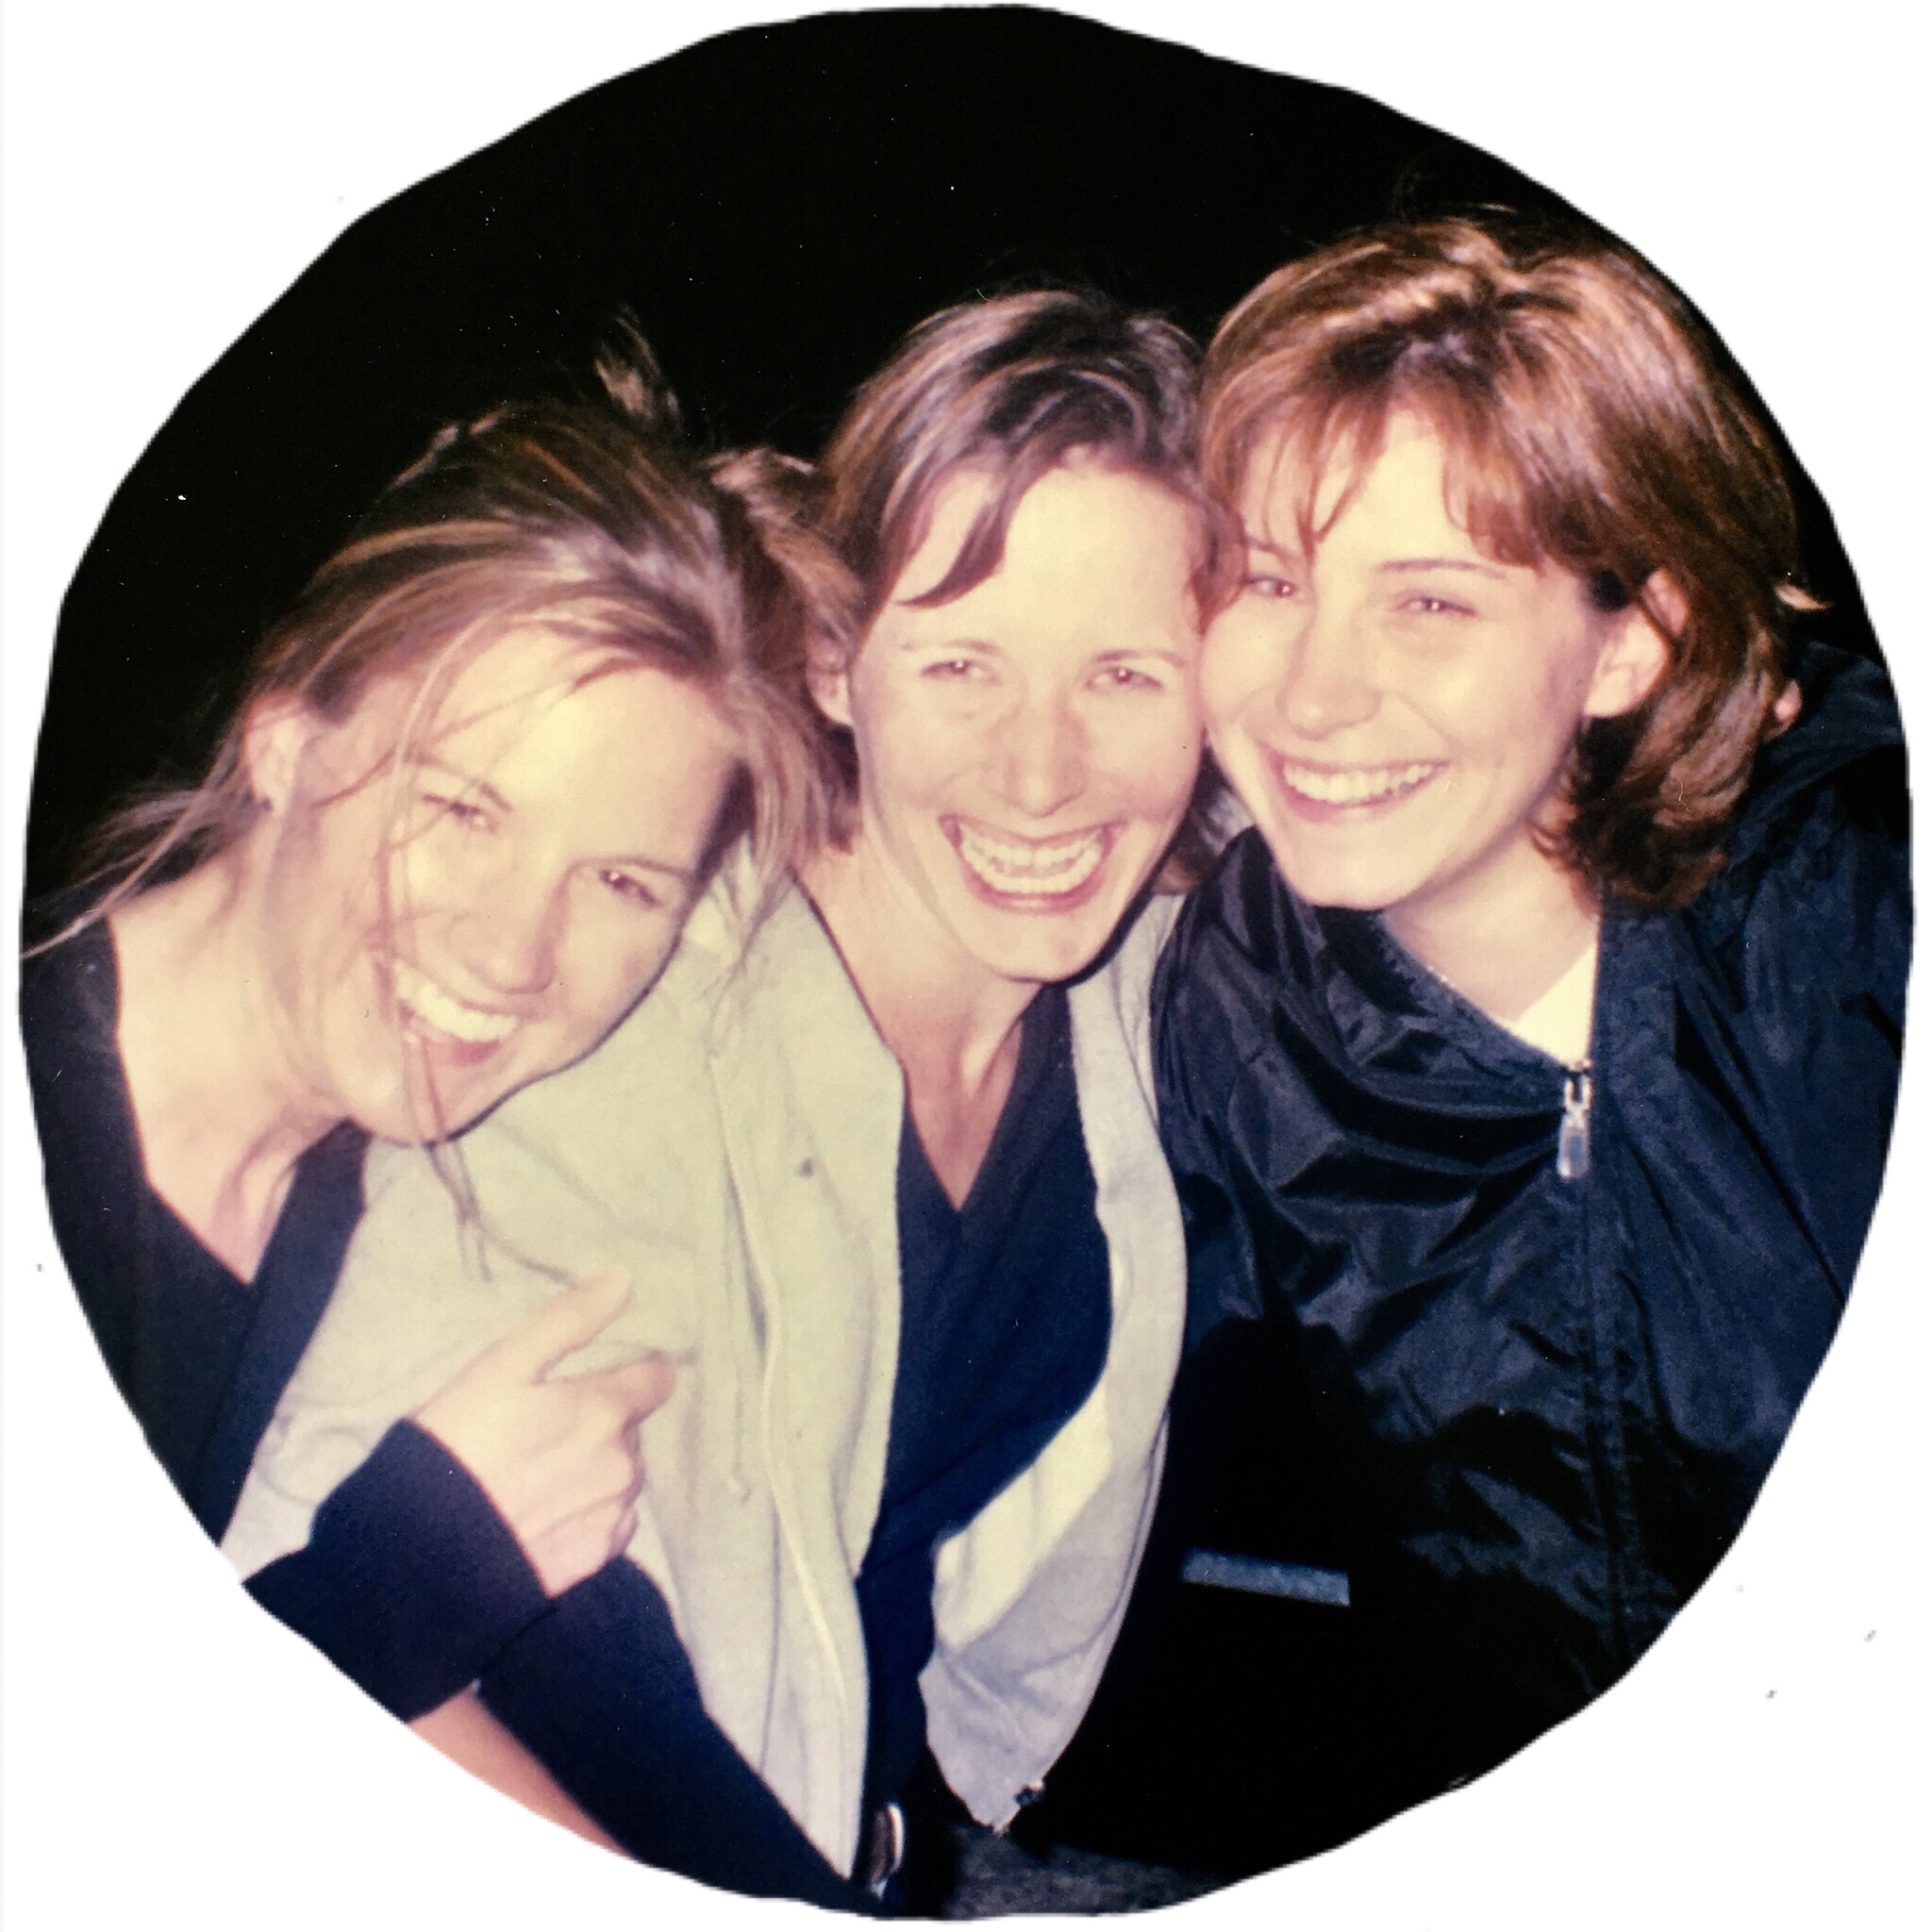 A blast from the past with friends